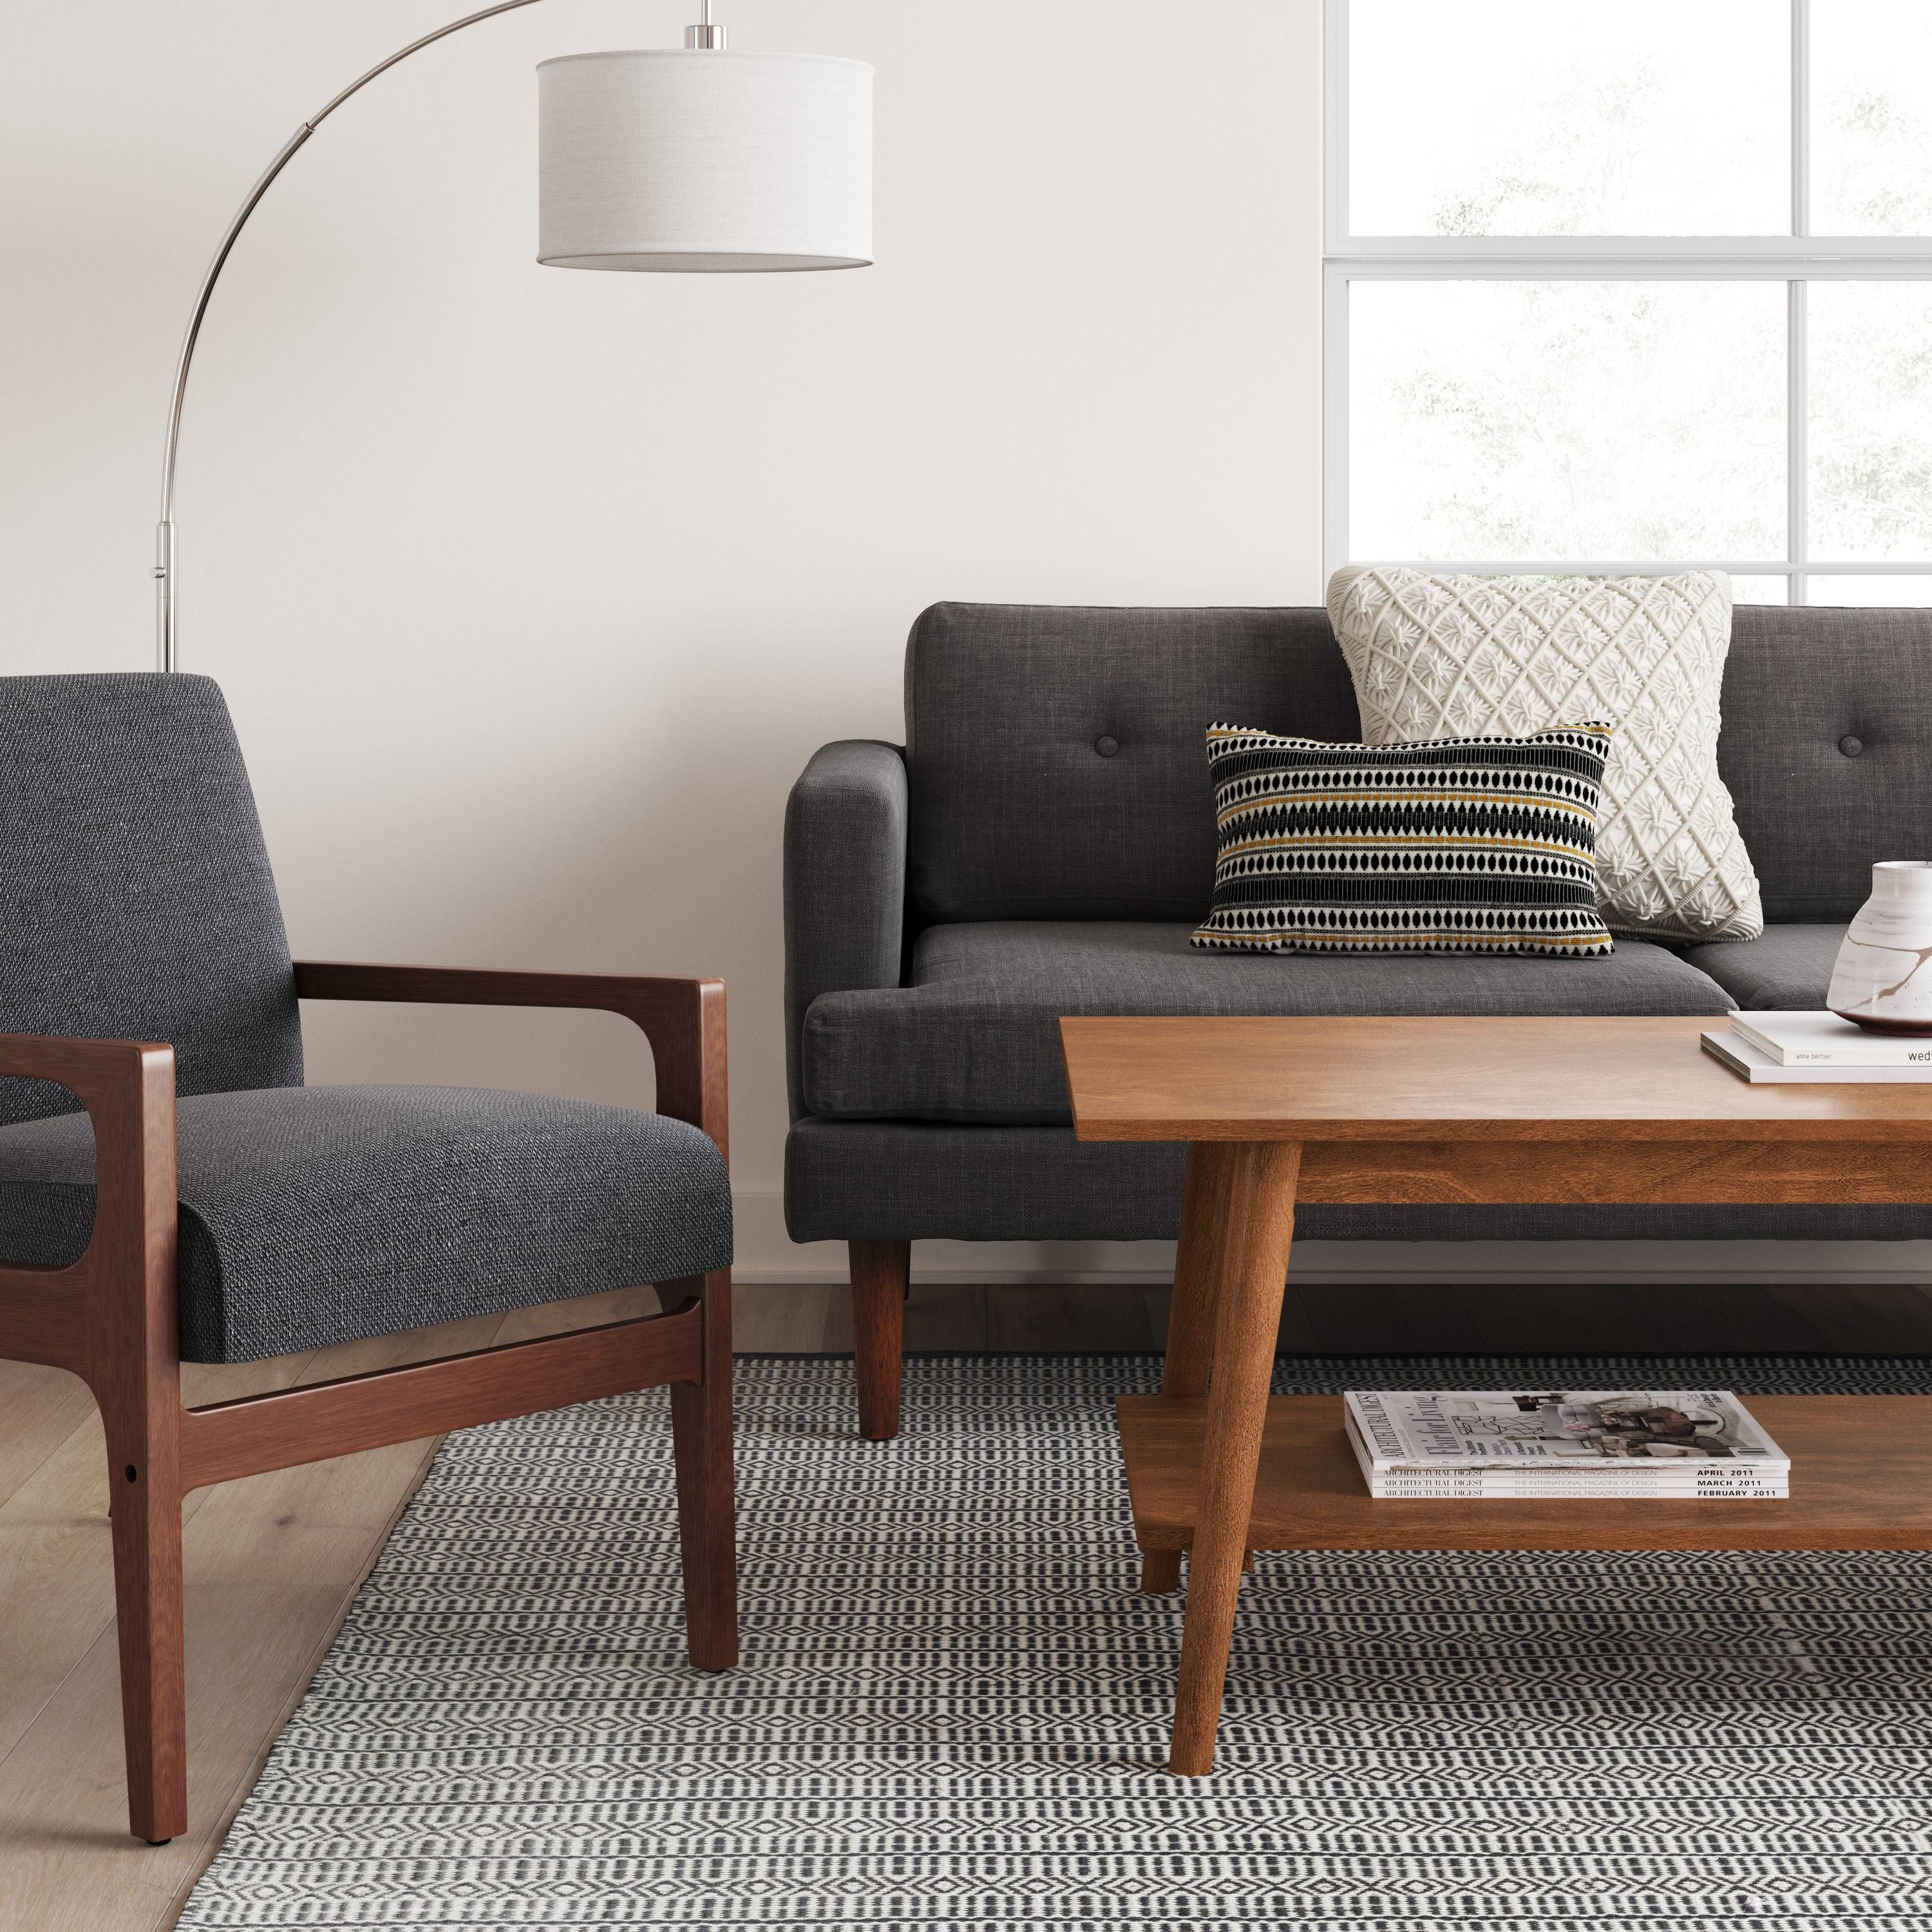 - Amherst Mid Century Modern Coffee Table Brown - Project 62™ Mid